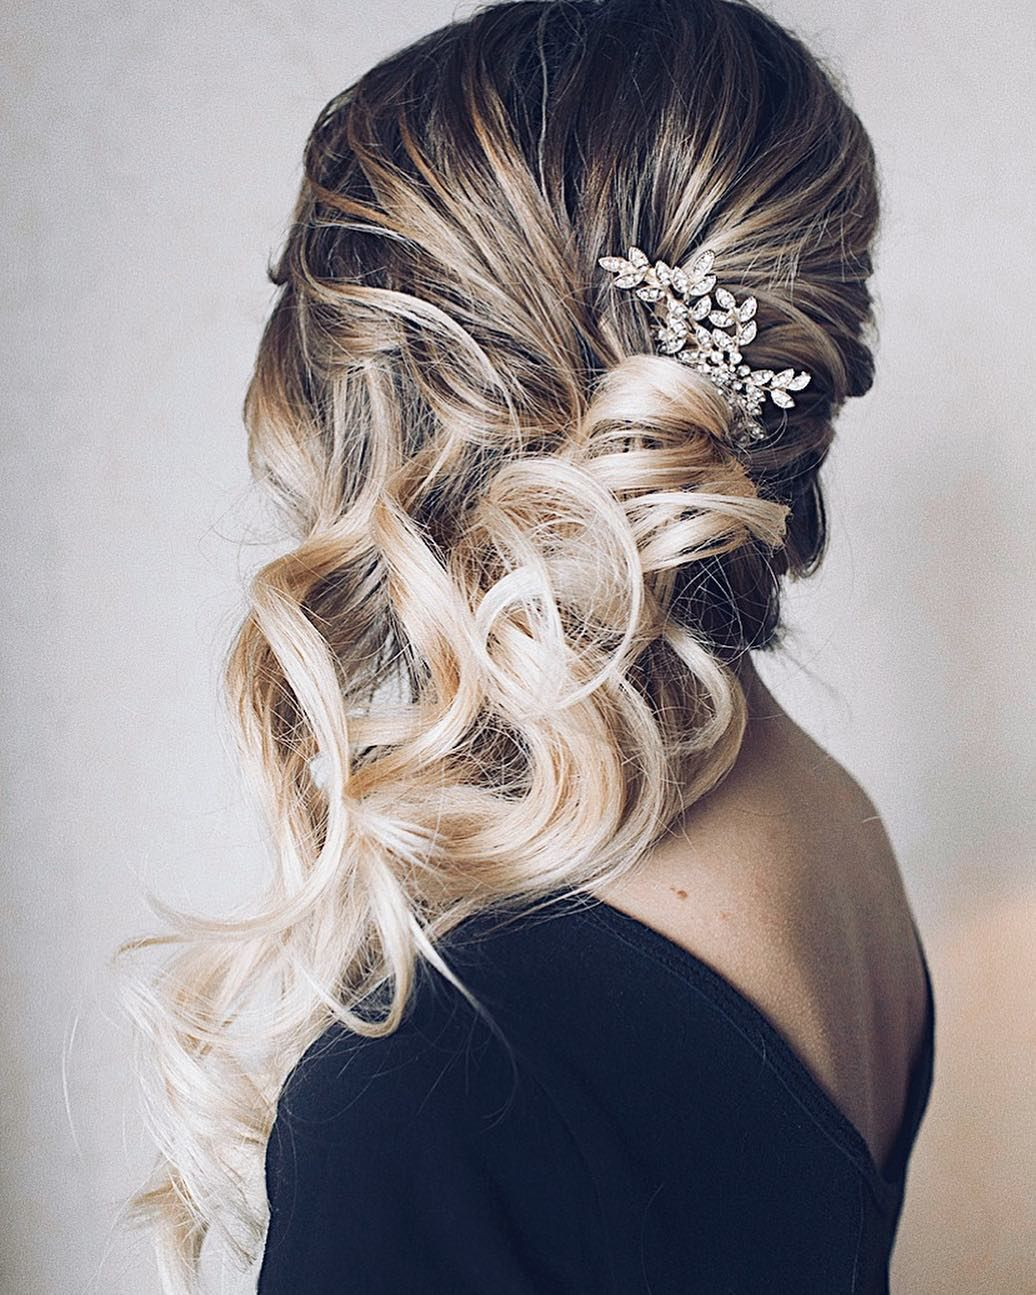 Side swept soft curls. A staple for sure! Happy Fourth of July weekend!